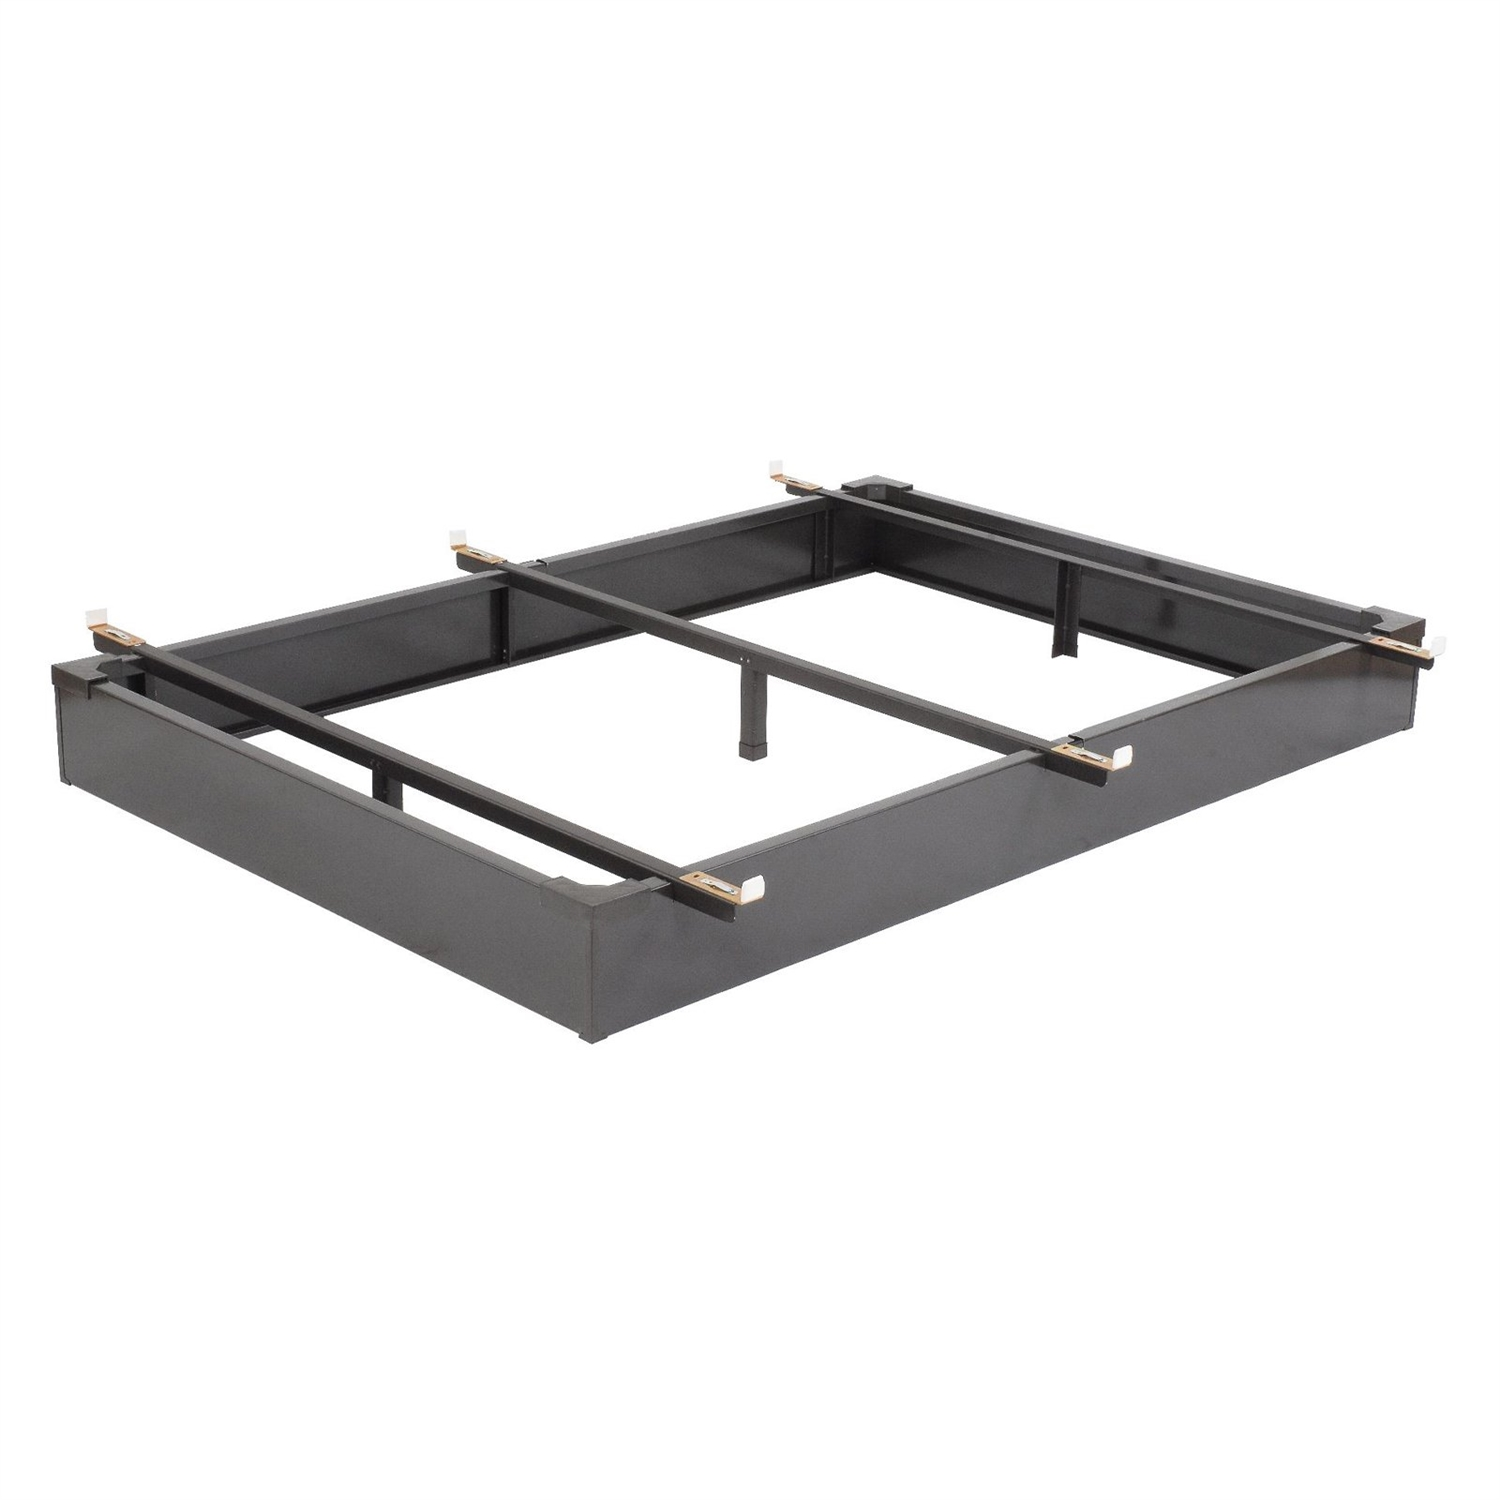 Full size Motel Style Bed Base Frame - Made in the USA ...